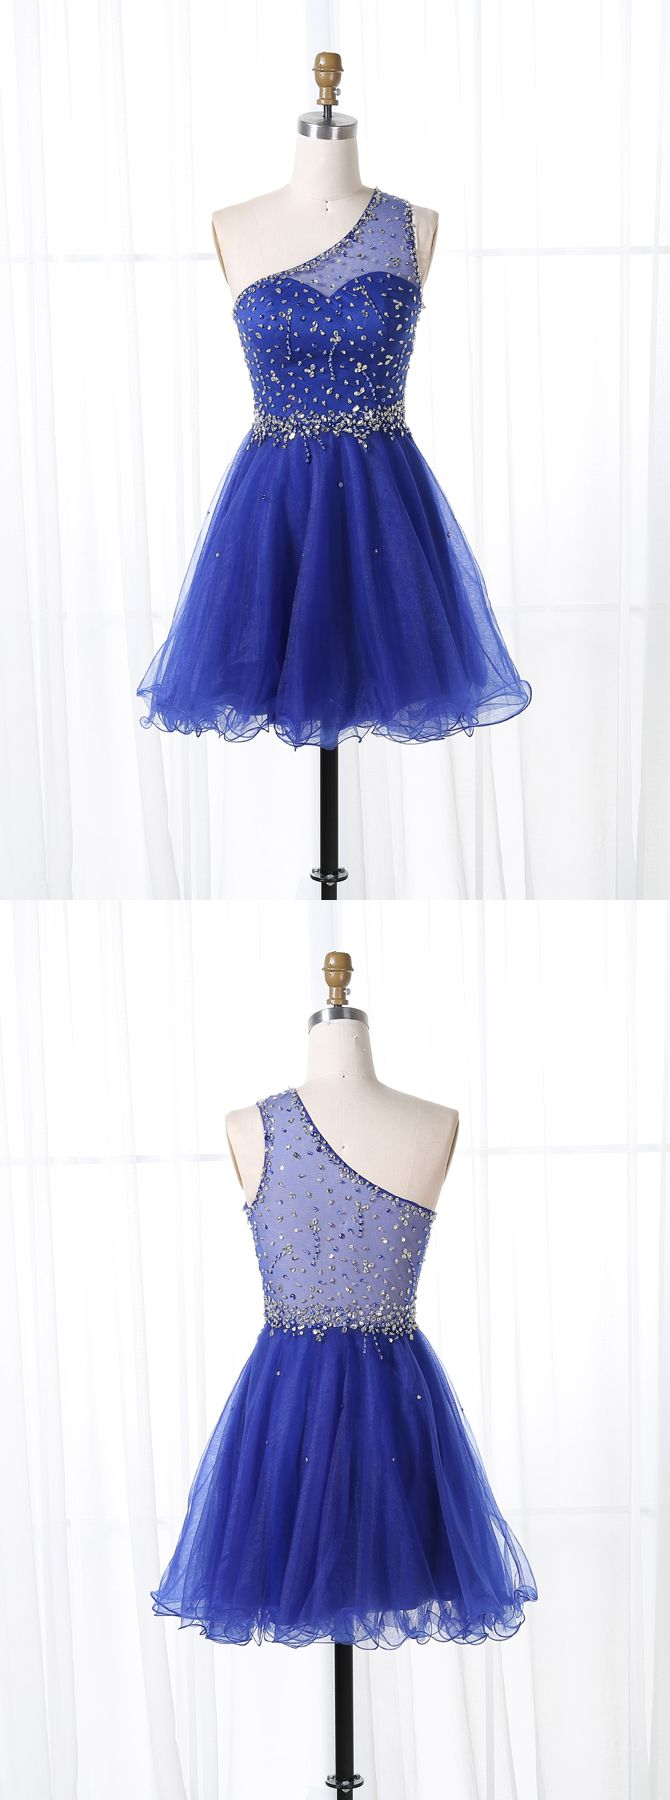 one shoulder short homecoming dresses,royal blua tulle prom dress,beaded party dress for teens,cheap cocktail dresses